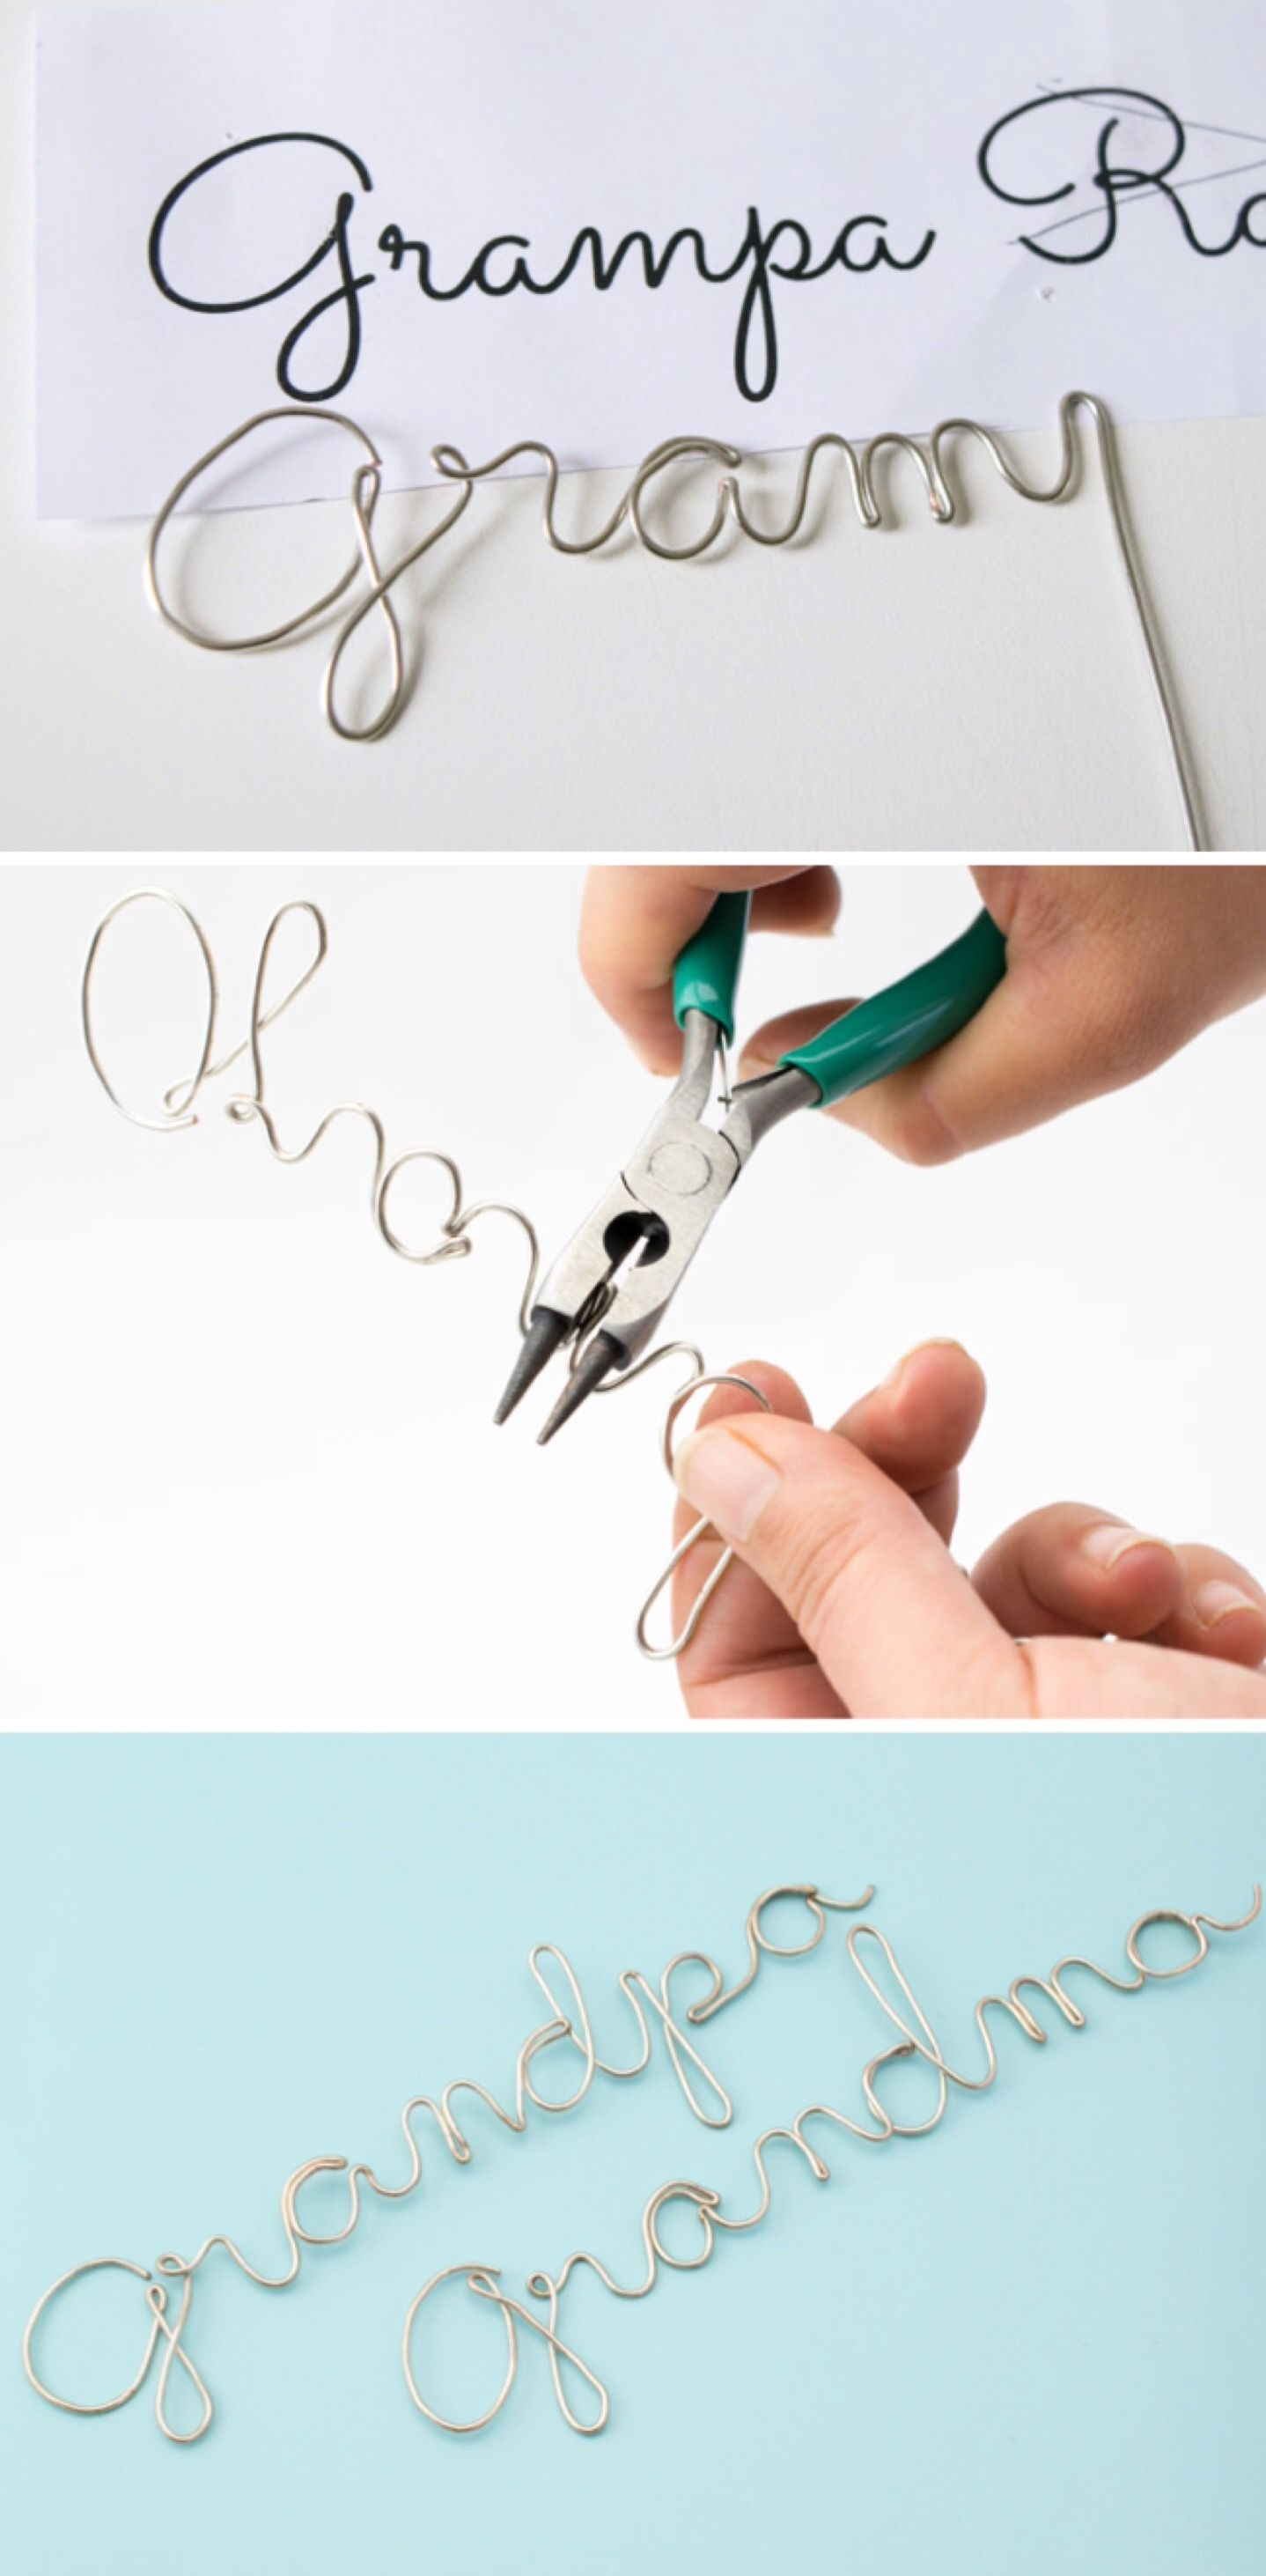 Wire Craft - Wrapping Wire to Make any Word or Name - | Pinterest ...